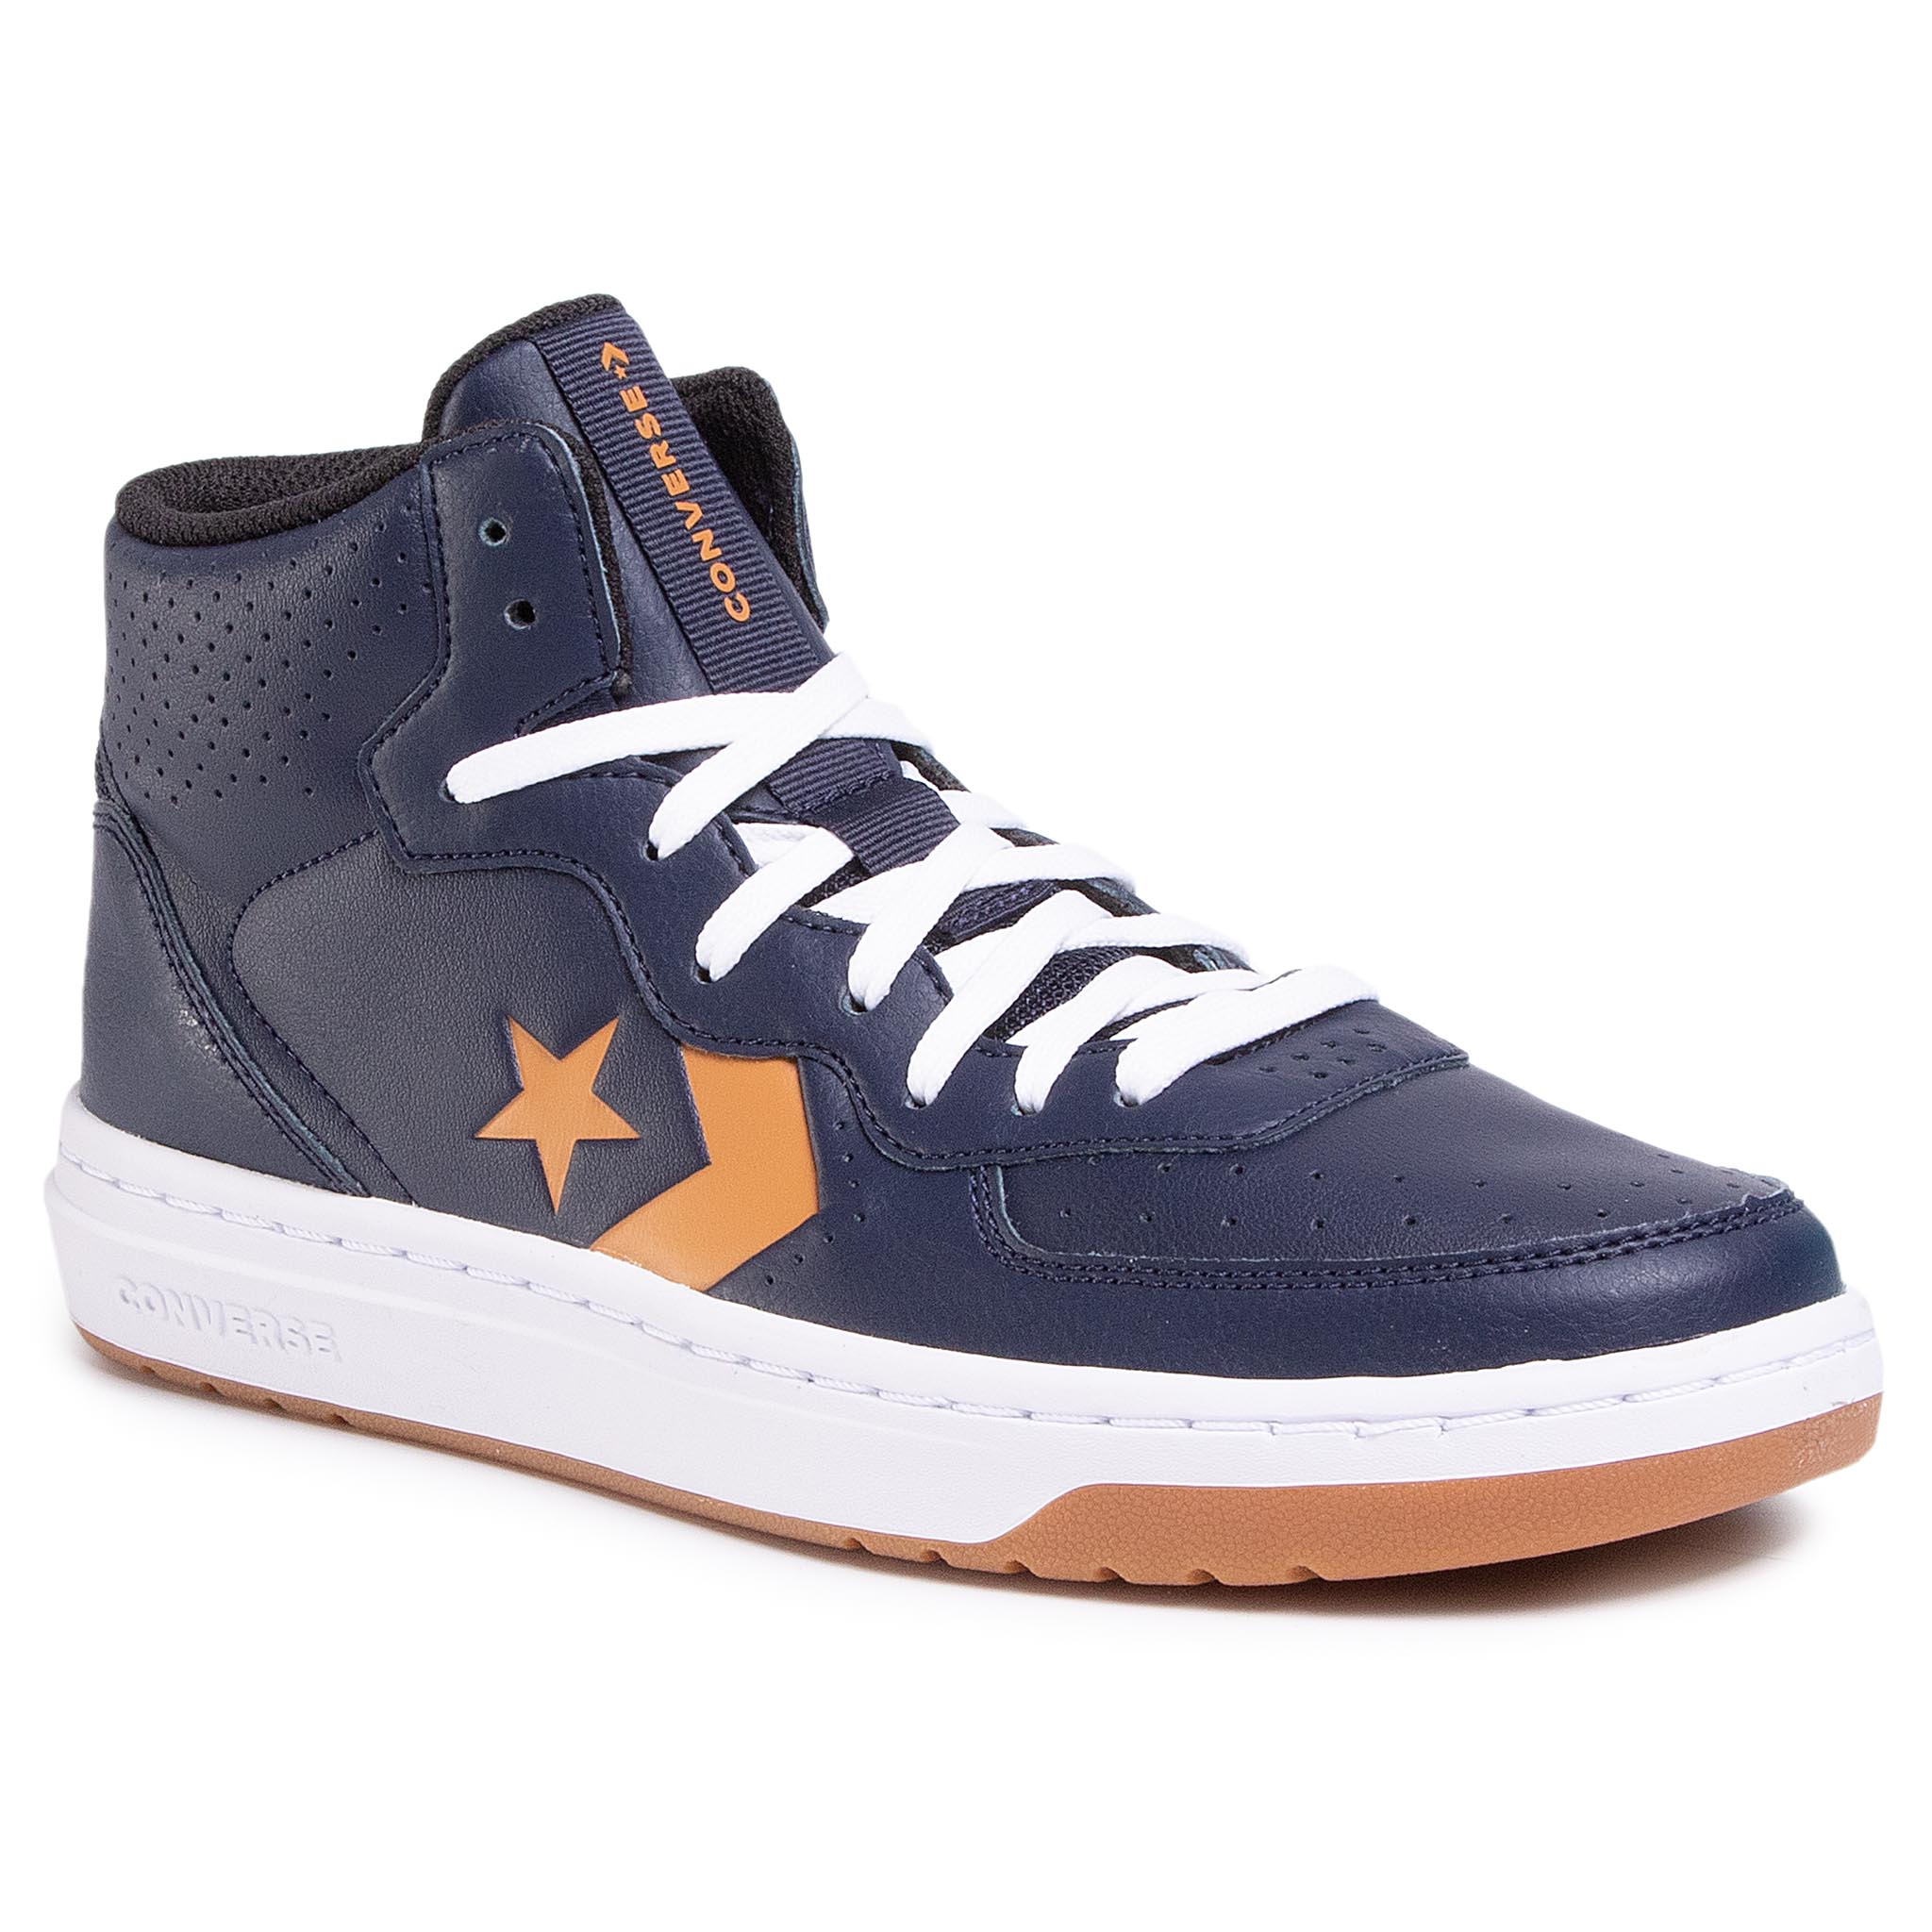 Sneakers CONVERSE - Rival Mid 167883C Obsidian/Golden Tan/White